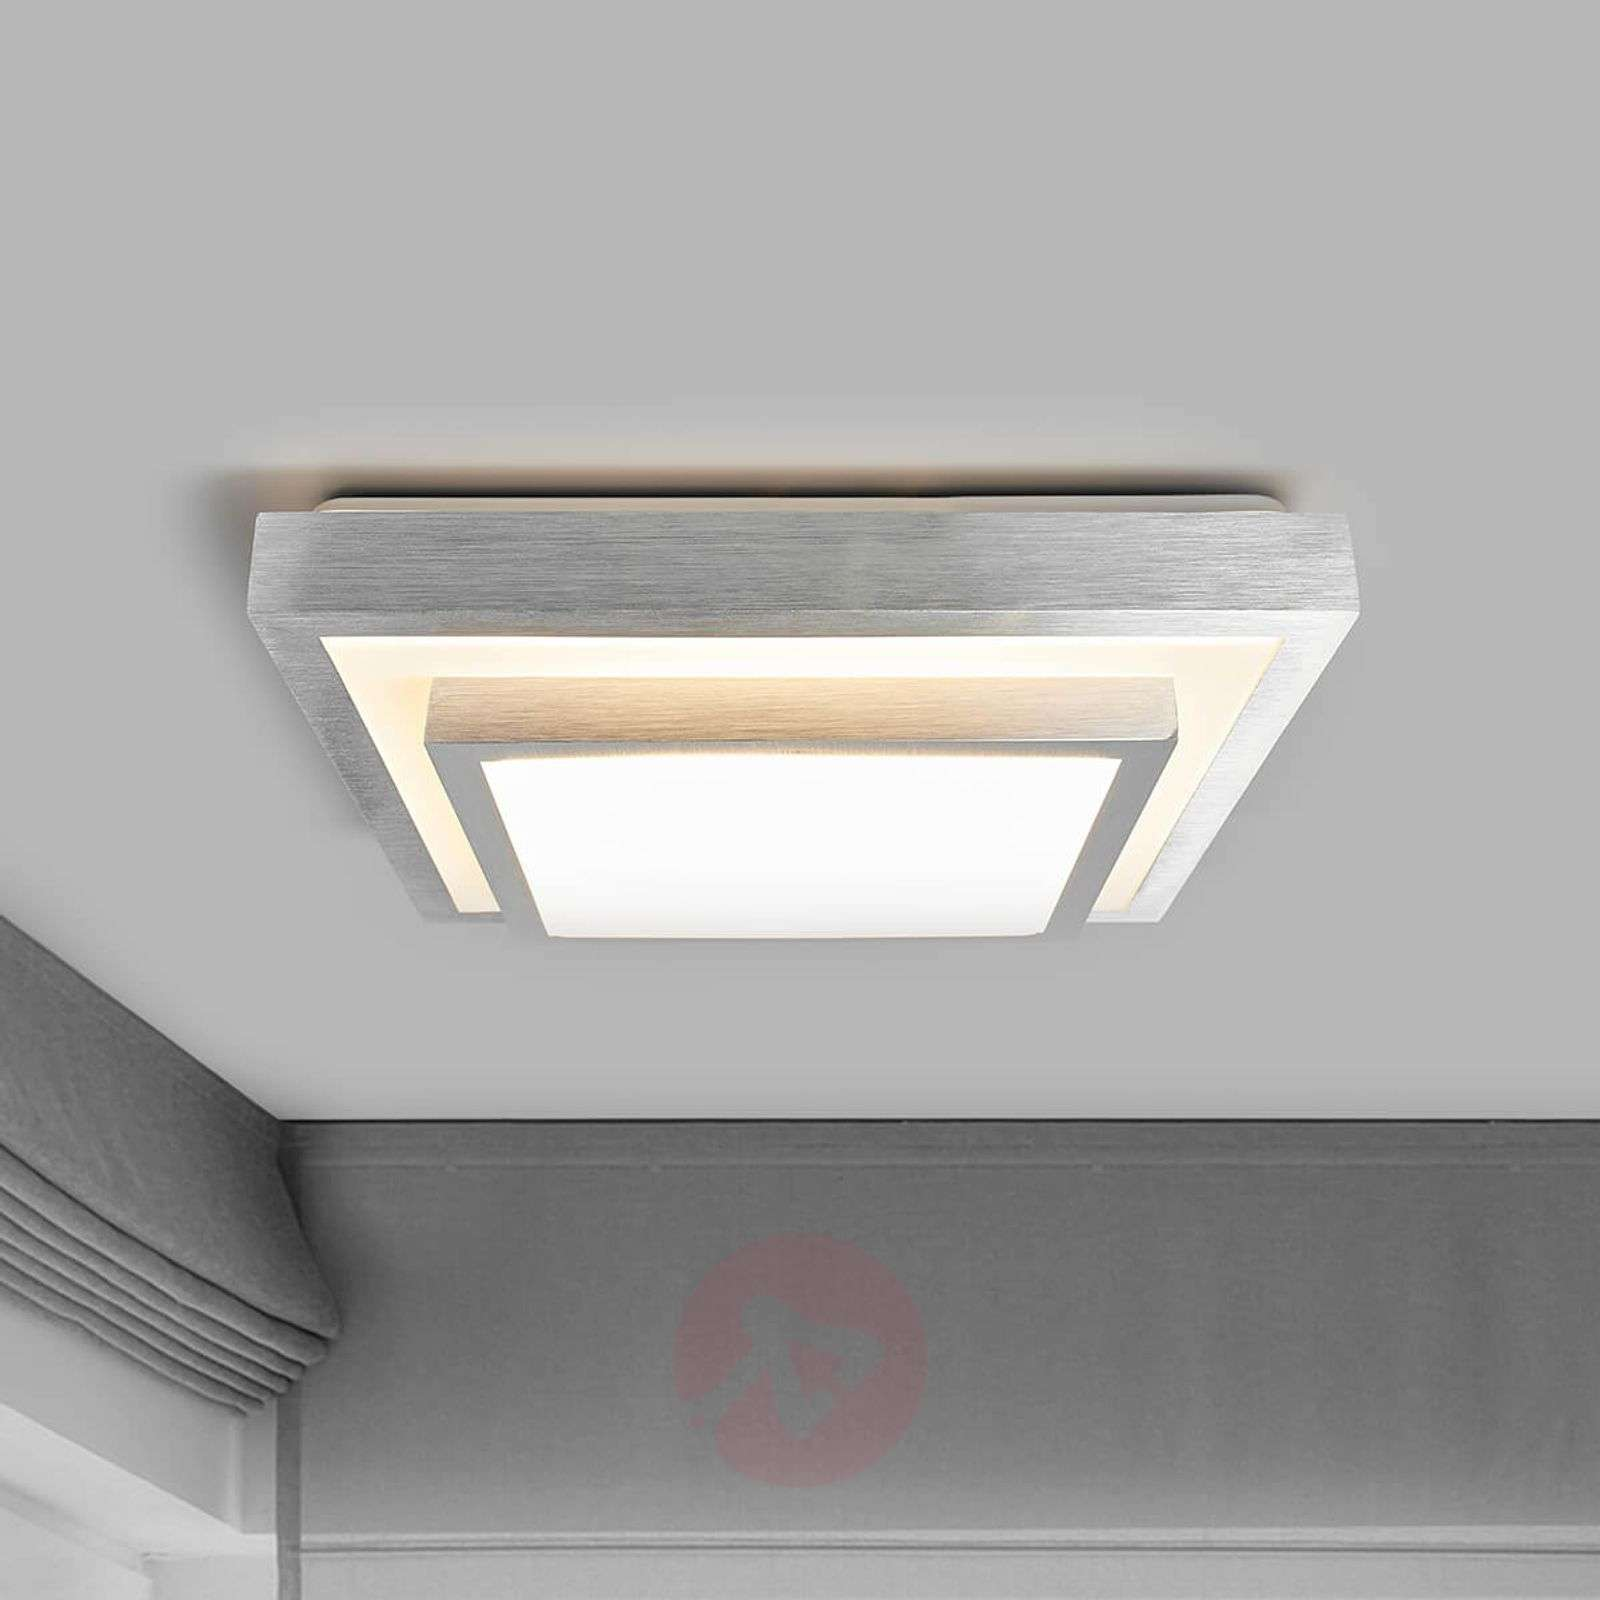 Plafonnier LED Huberta à éclairage fort-9974016-01